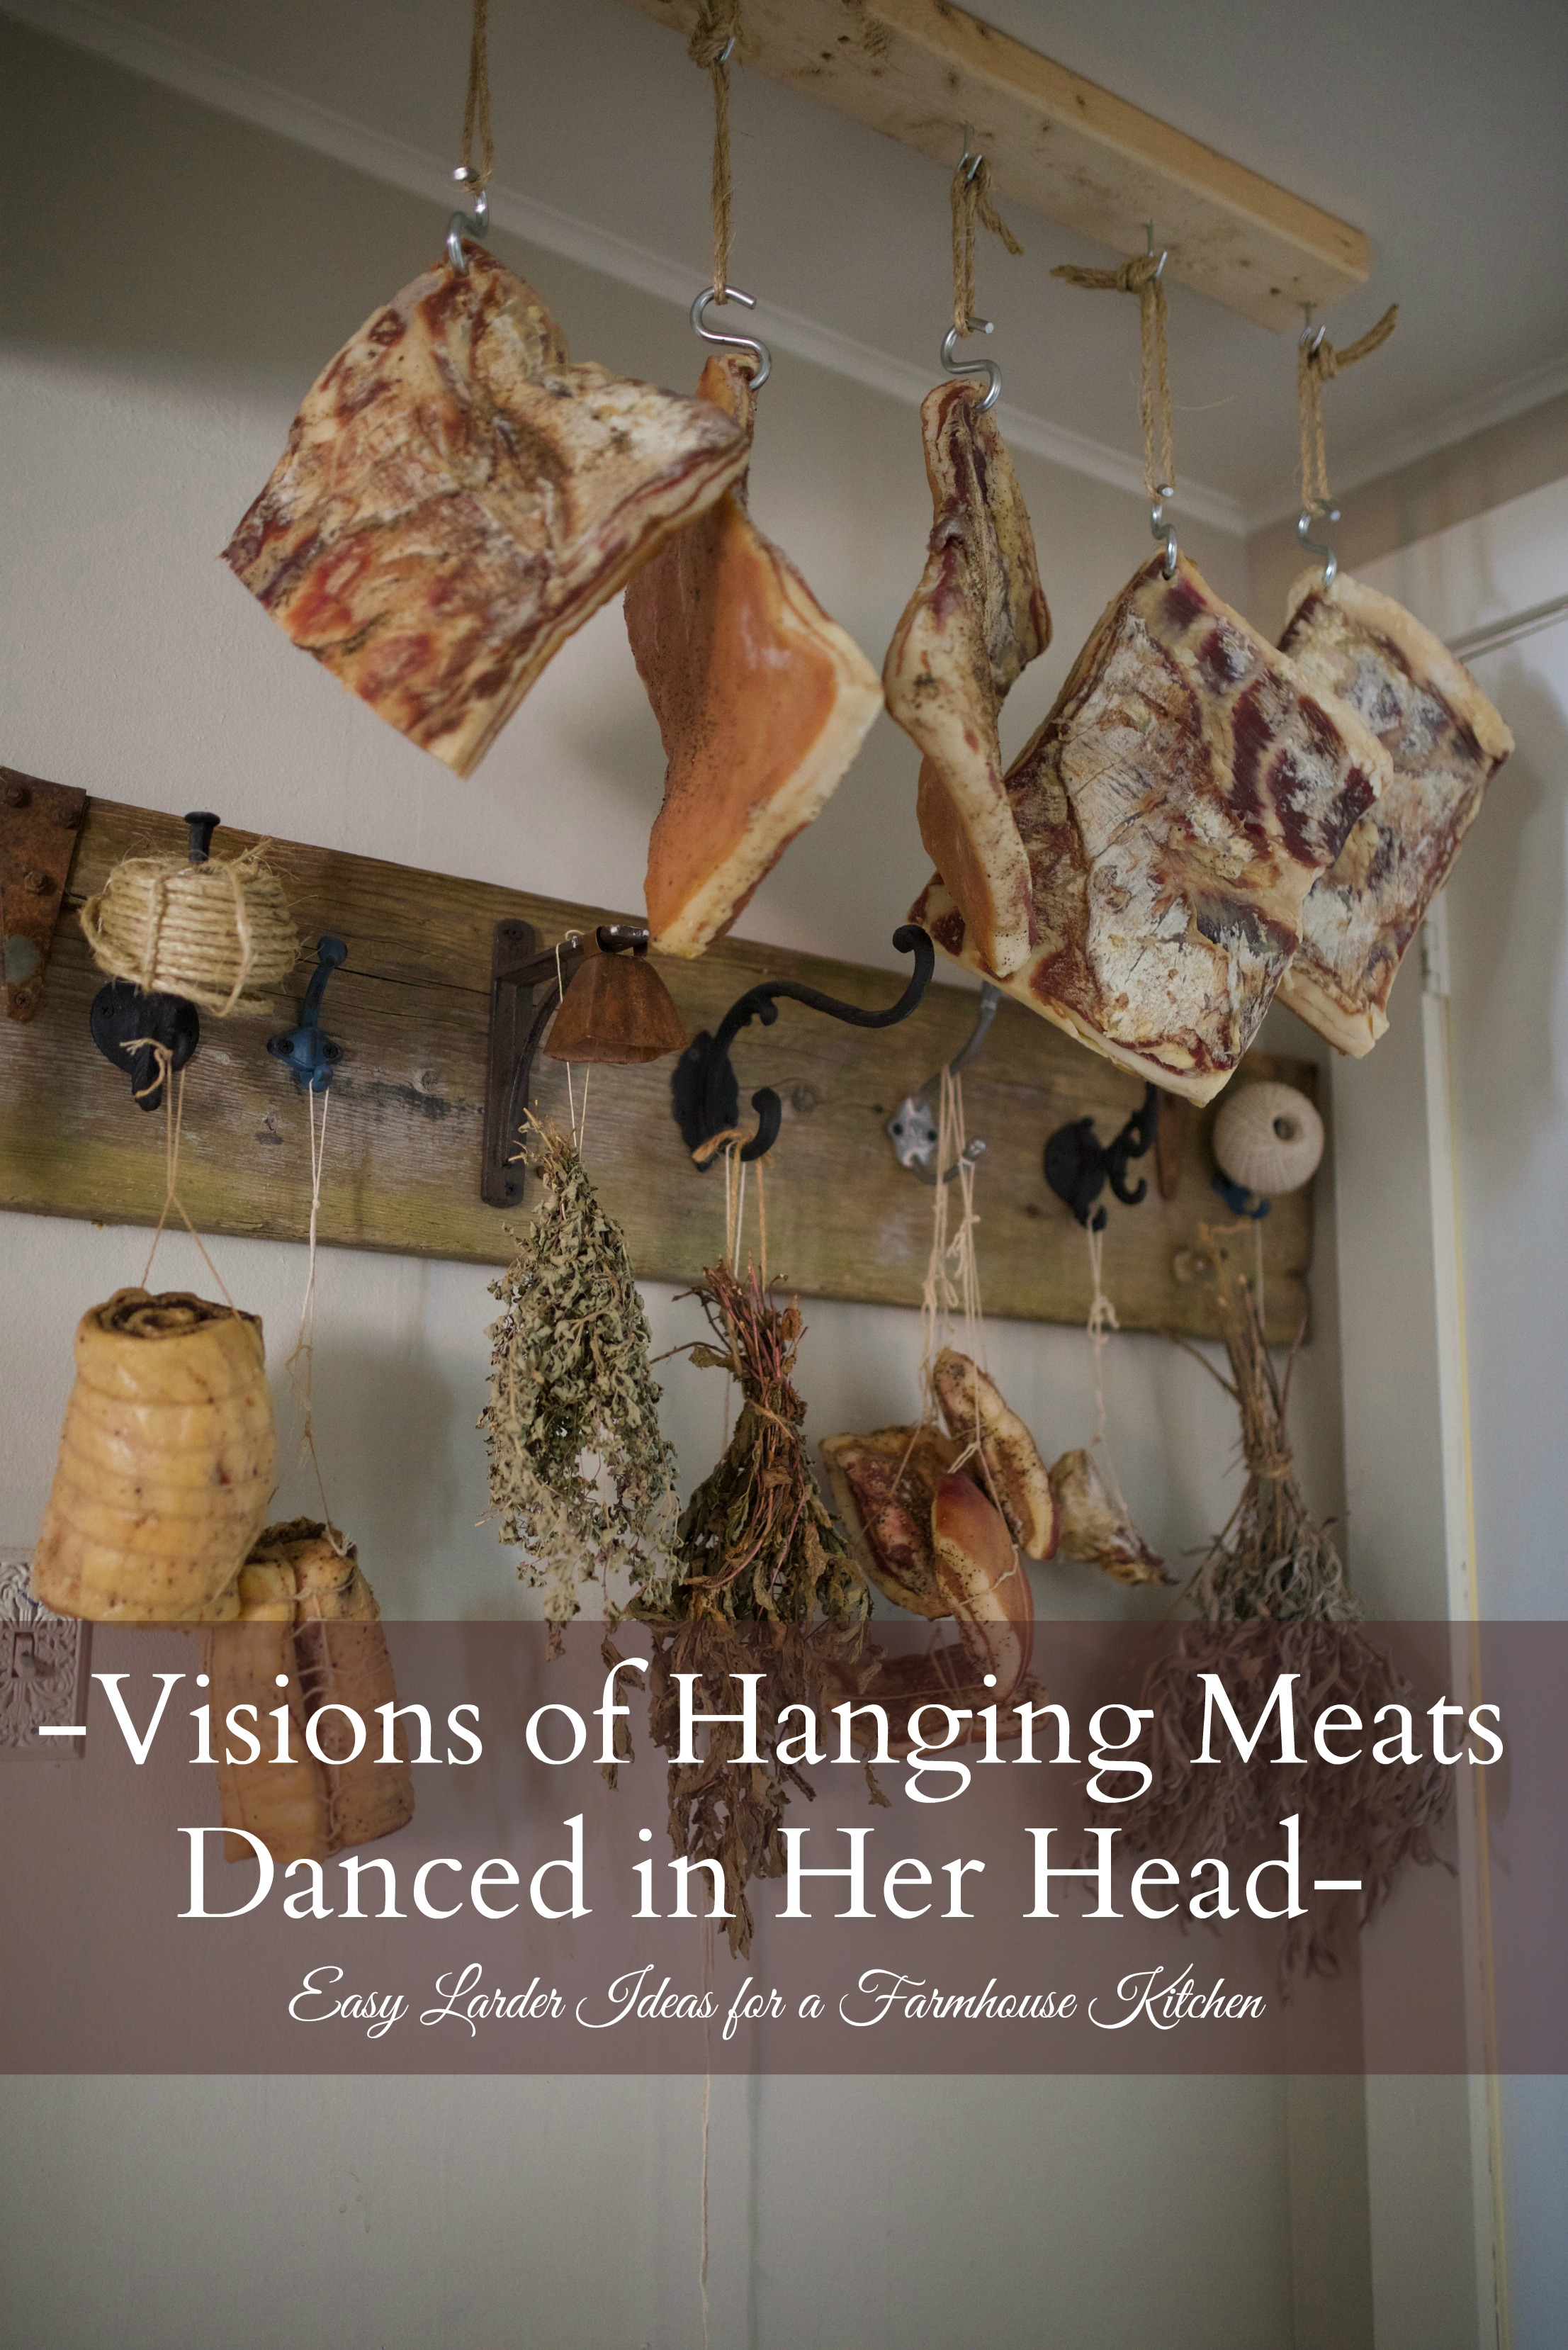 Visions of Hanging Meats Danced in Her Head